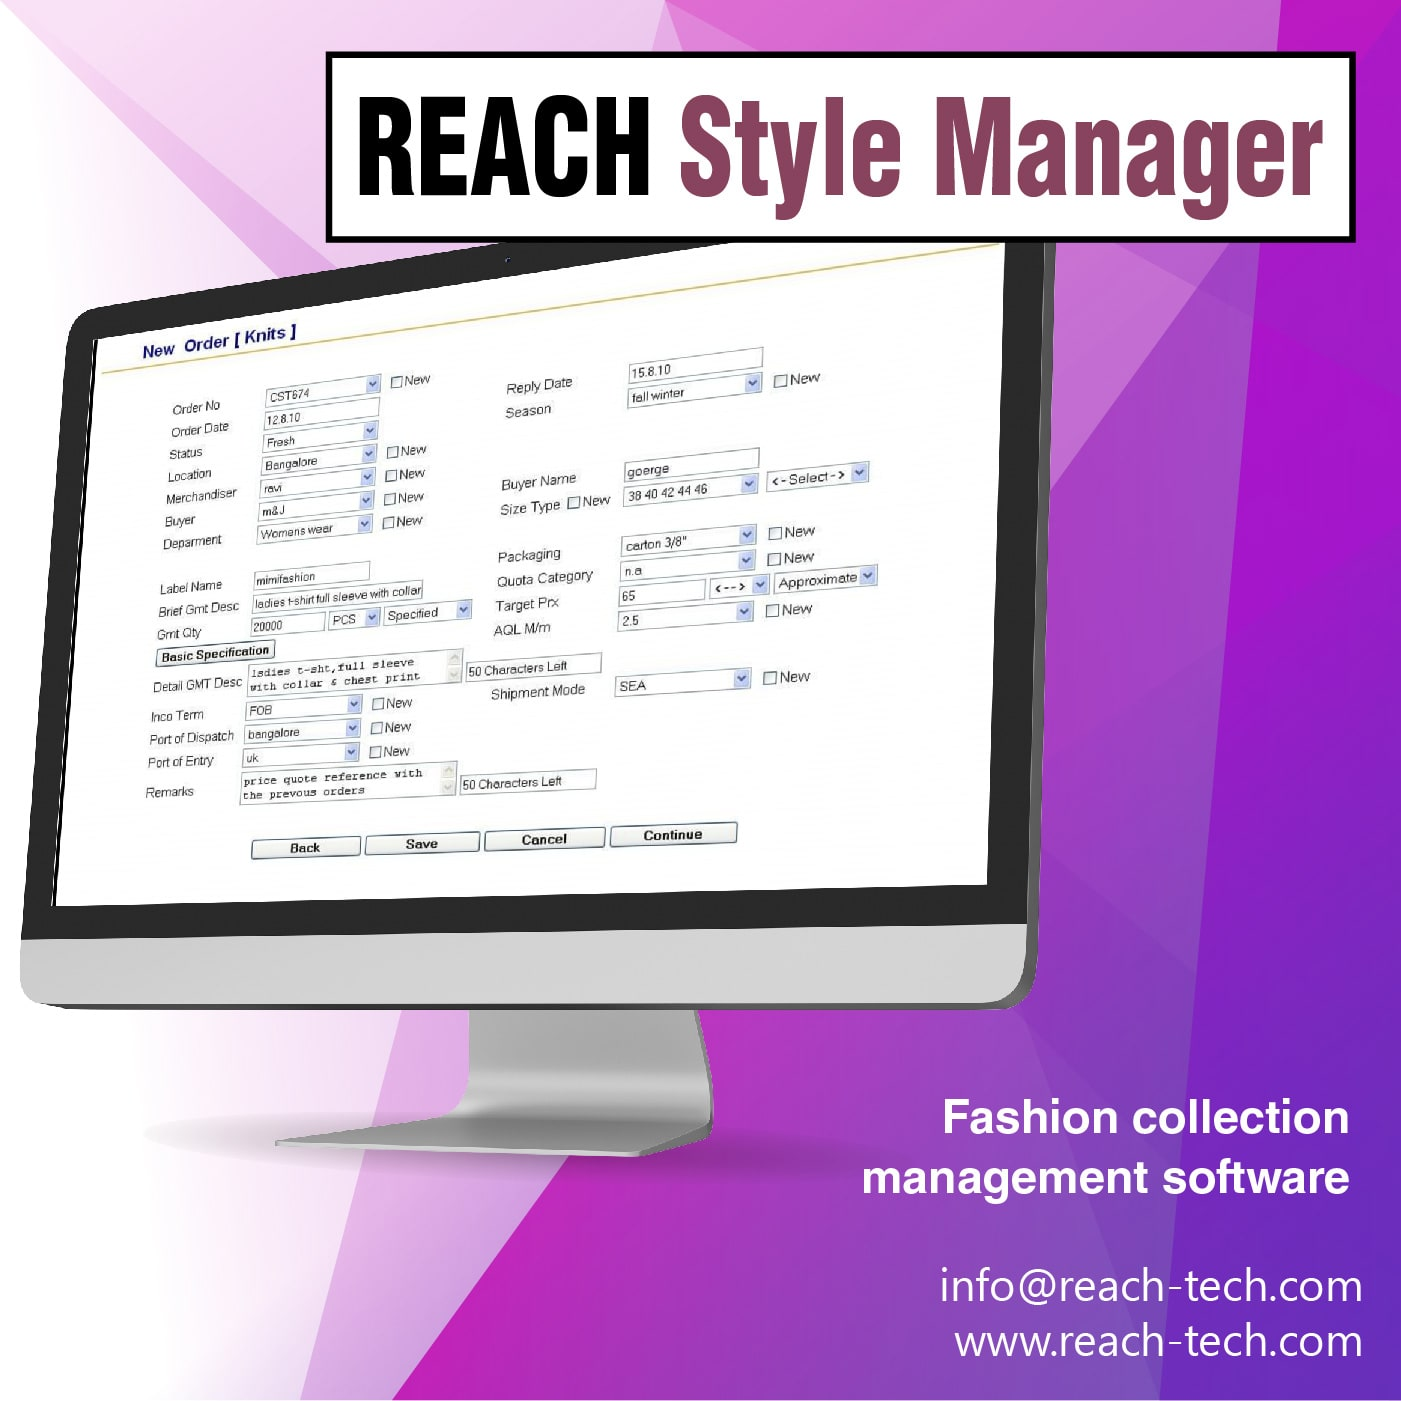 garment-collection-management-software-3